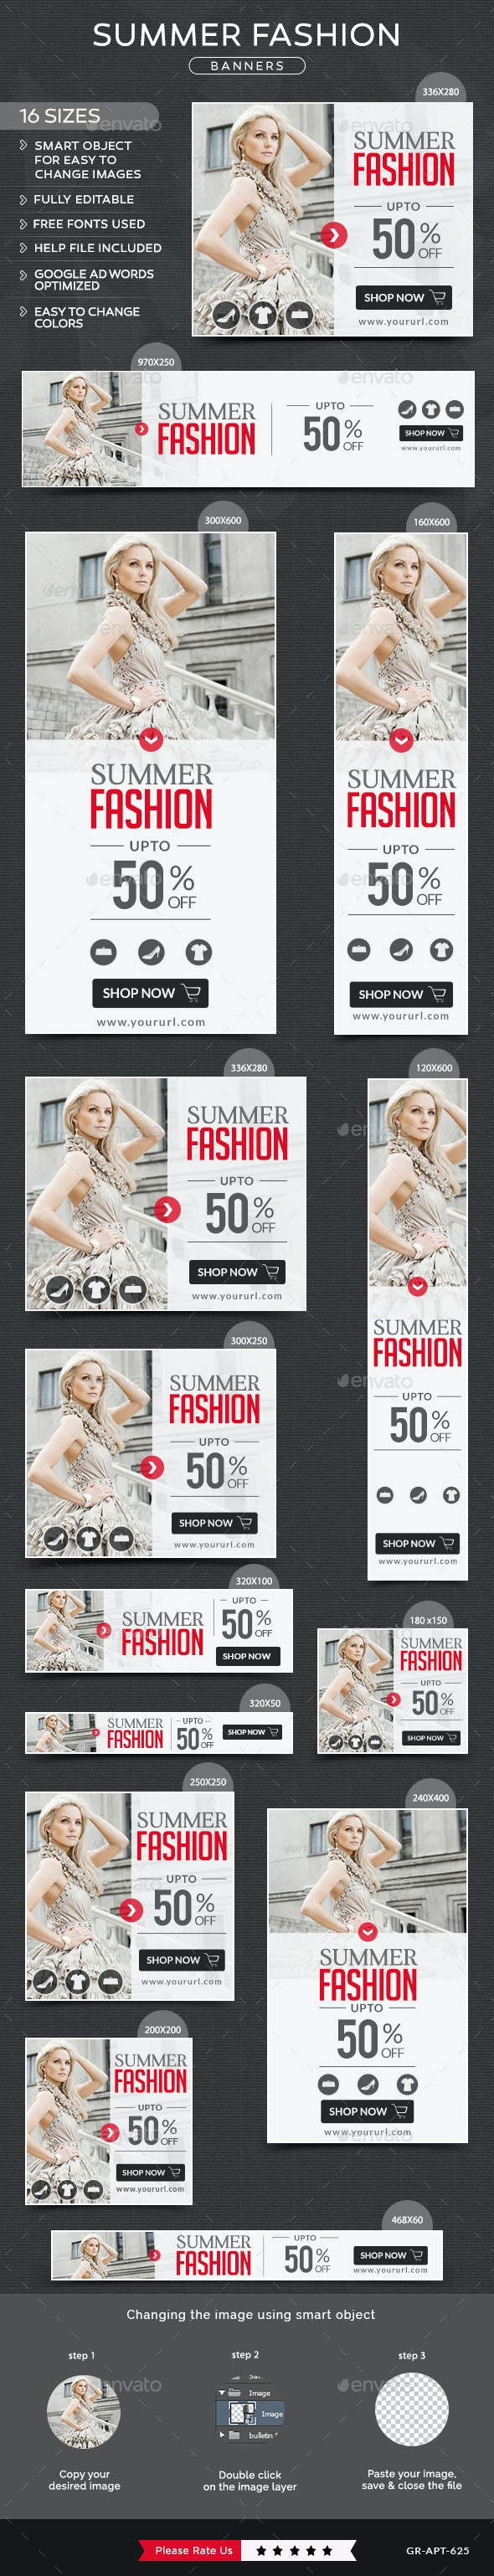 Summer Fashion Banners - Banners & Ads Web Elements